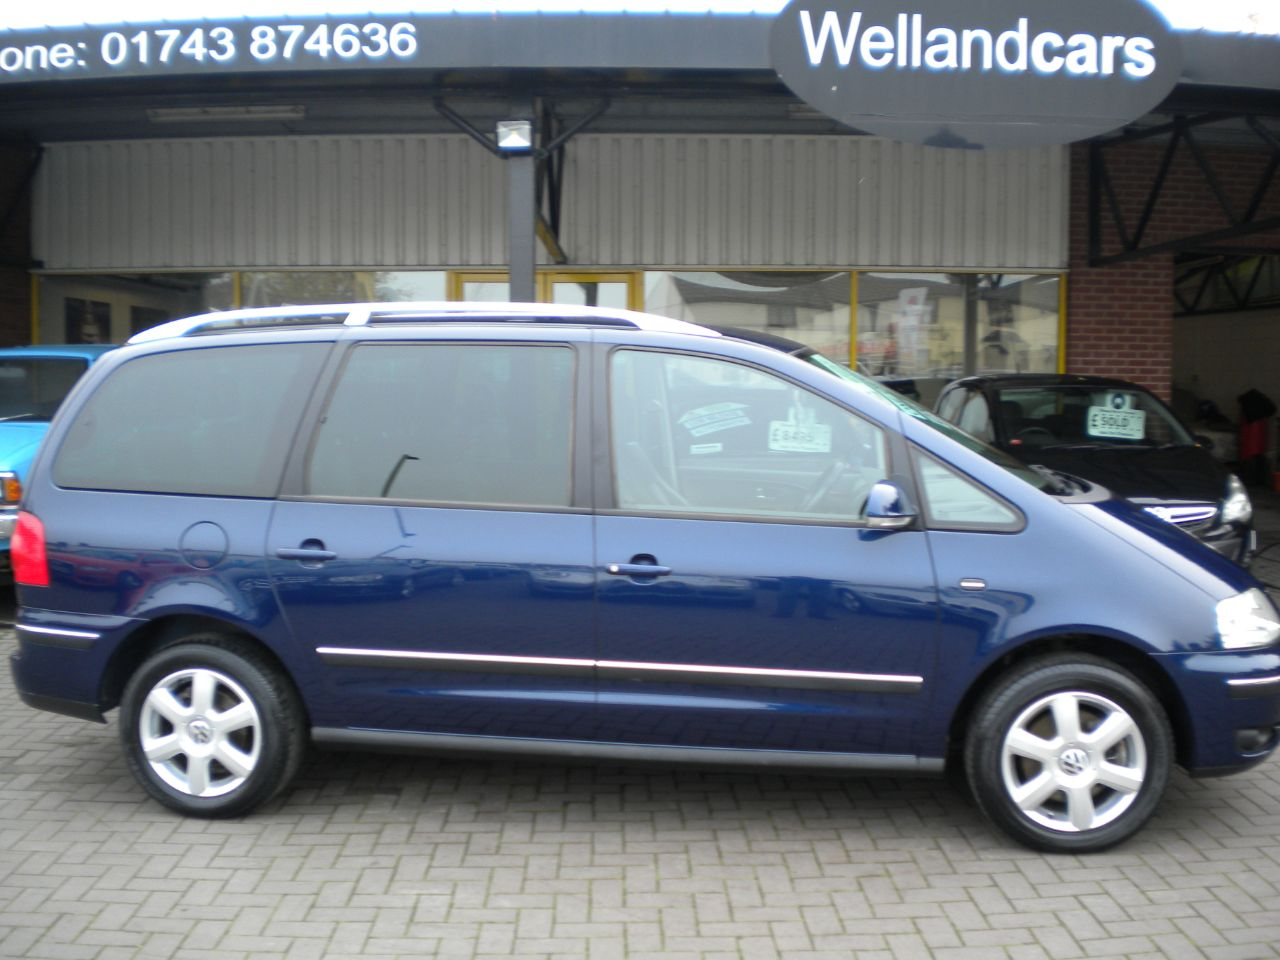 Volkswagen Sharan 1.9 TDI Carat 130BHP 5dr 7 Seats, F/S/H, 1 Owner  15 MONTH PARTS AND LABOUR WARRANTY INCLUDED MPV Diesel Metallic Blue at Welland Cars Shrewsbury